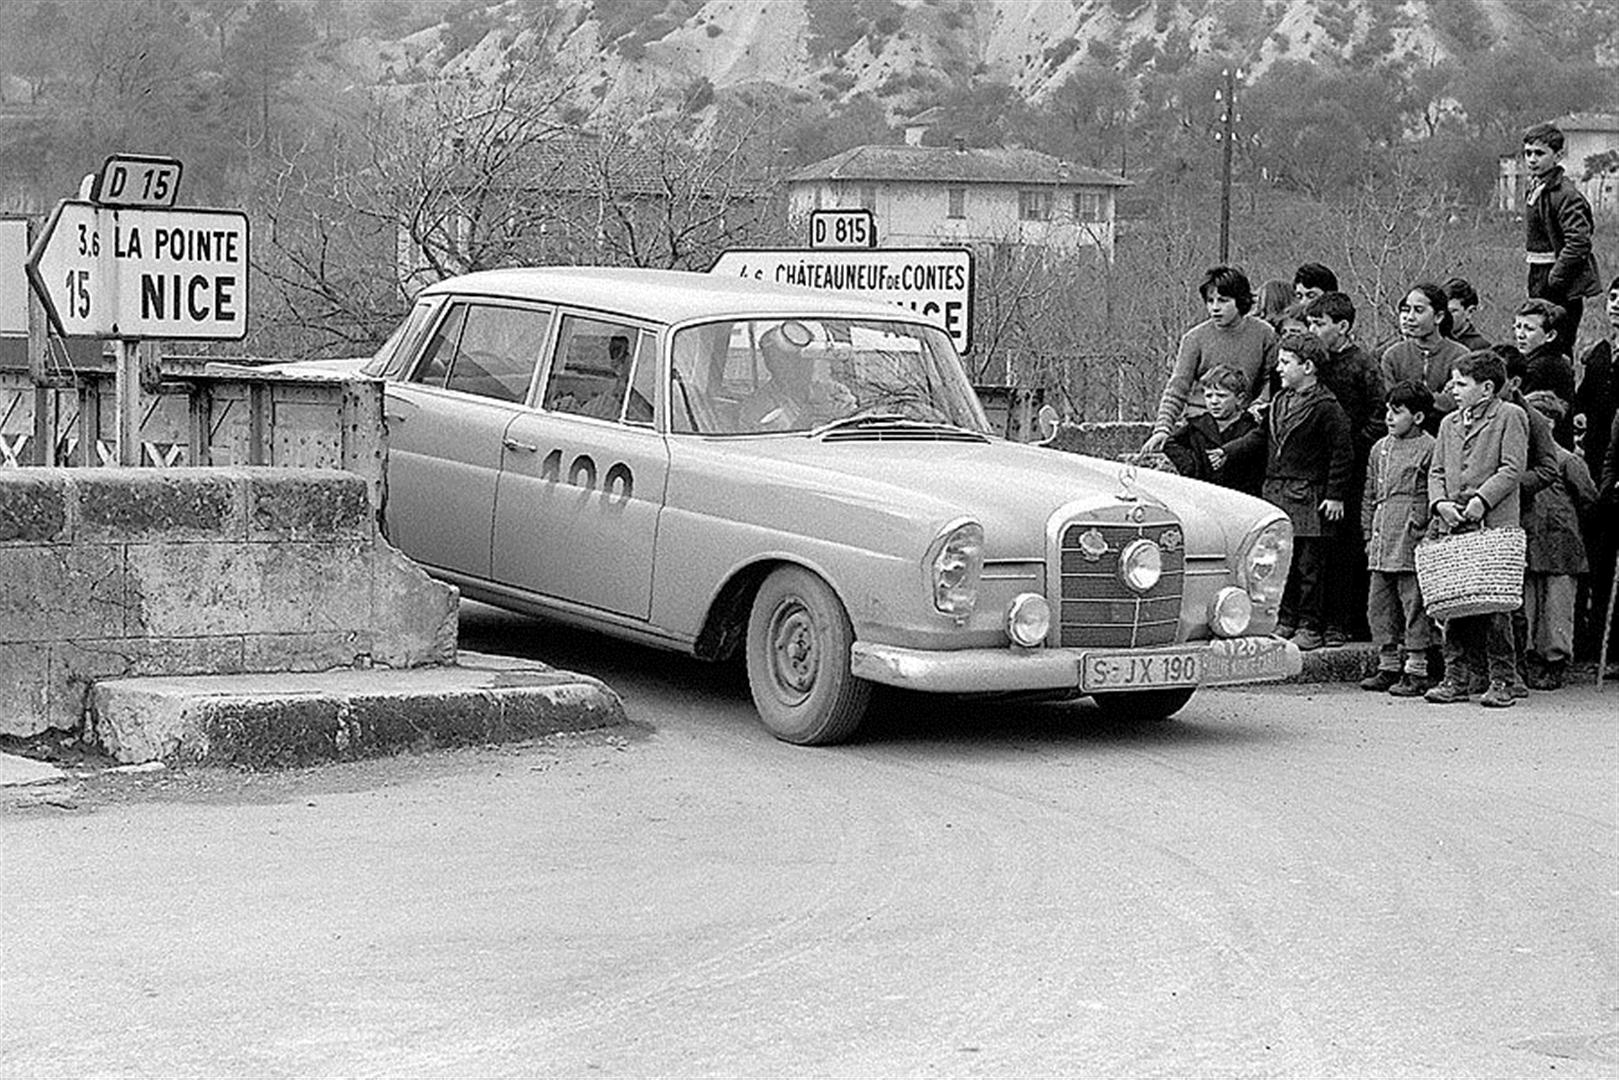 the Mercedes-Benz W111 and